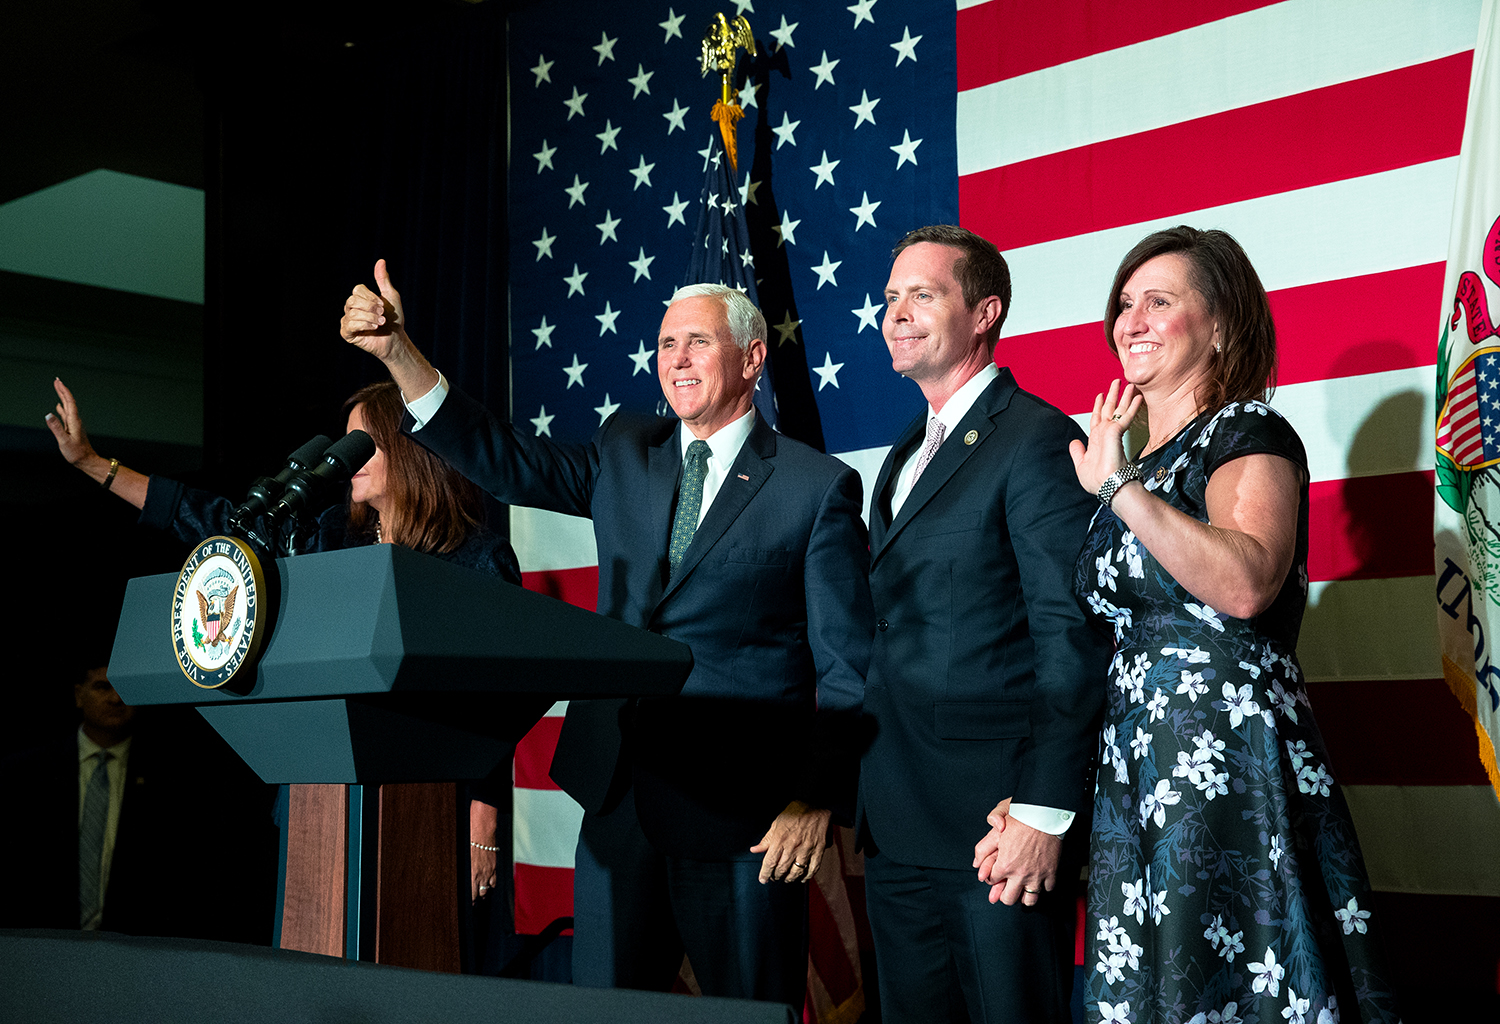 Karen and Vice President Mike Pence, left, and Rodney Davis, R-Taylorville, and his wife Shannon wave to the crowd gathered at Panther Creek Country Club in Springfield, Ill., Friday, Oct. 12, 2018. Davis is locked in a nationally watched race for the 13th Congressional District against Democrat Betsy Dirksen Londrigan of Springfield. [Ted Schurter/The State Journal-Register]